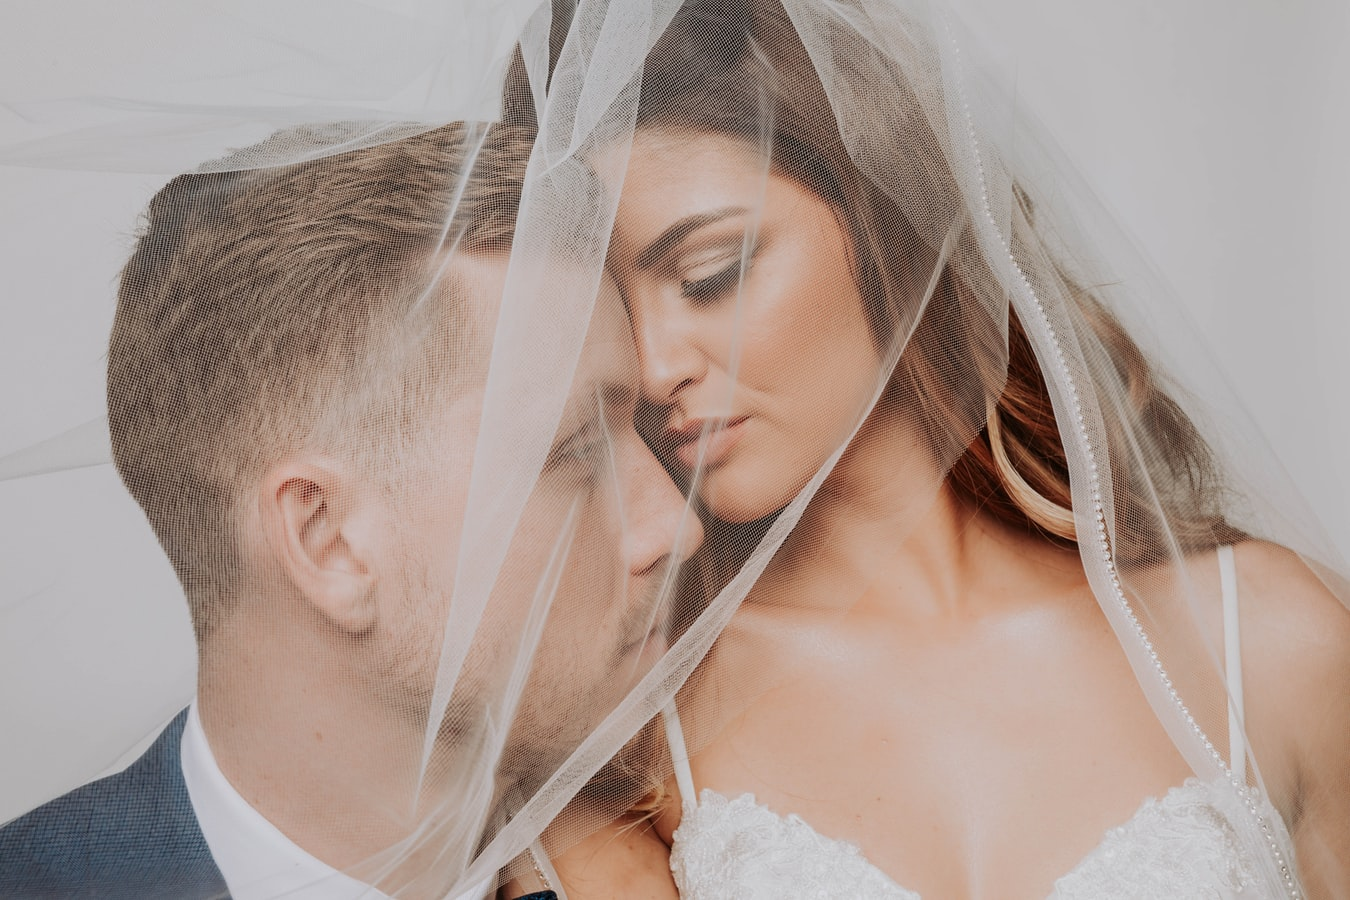 Pre-Wedding Stress: 8 Tips To Stay Strong